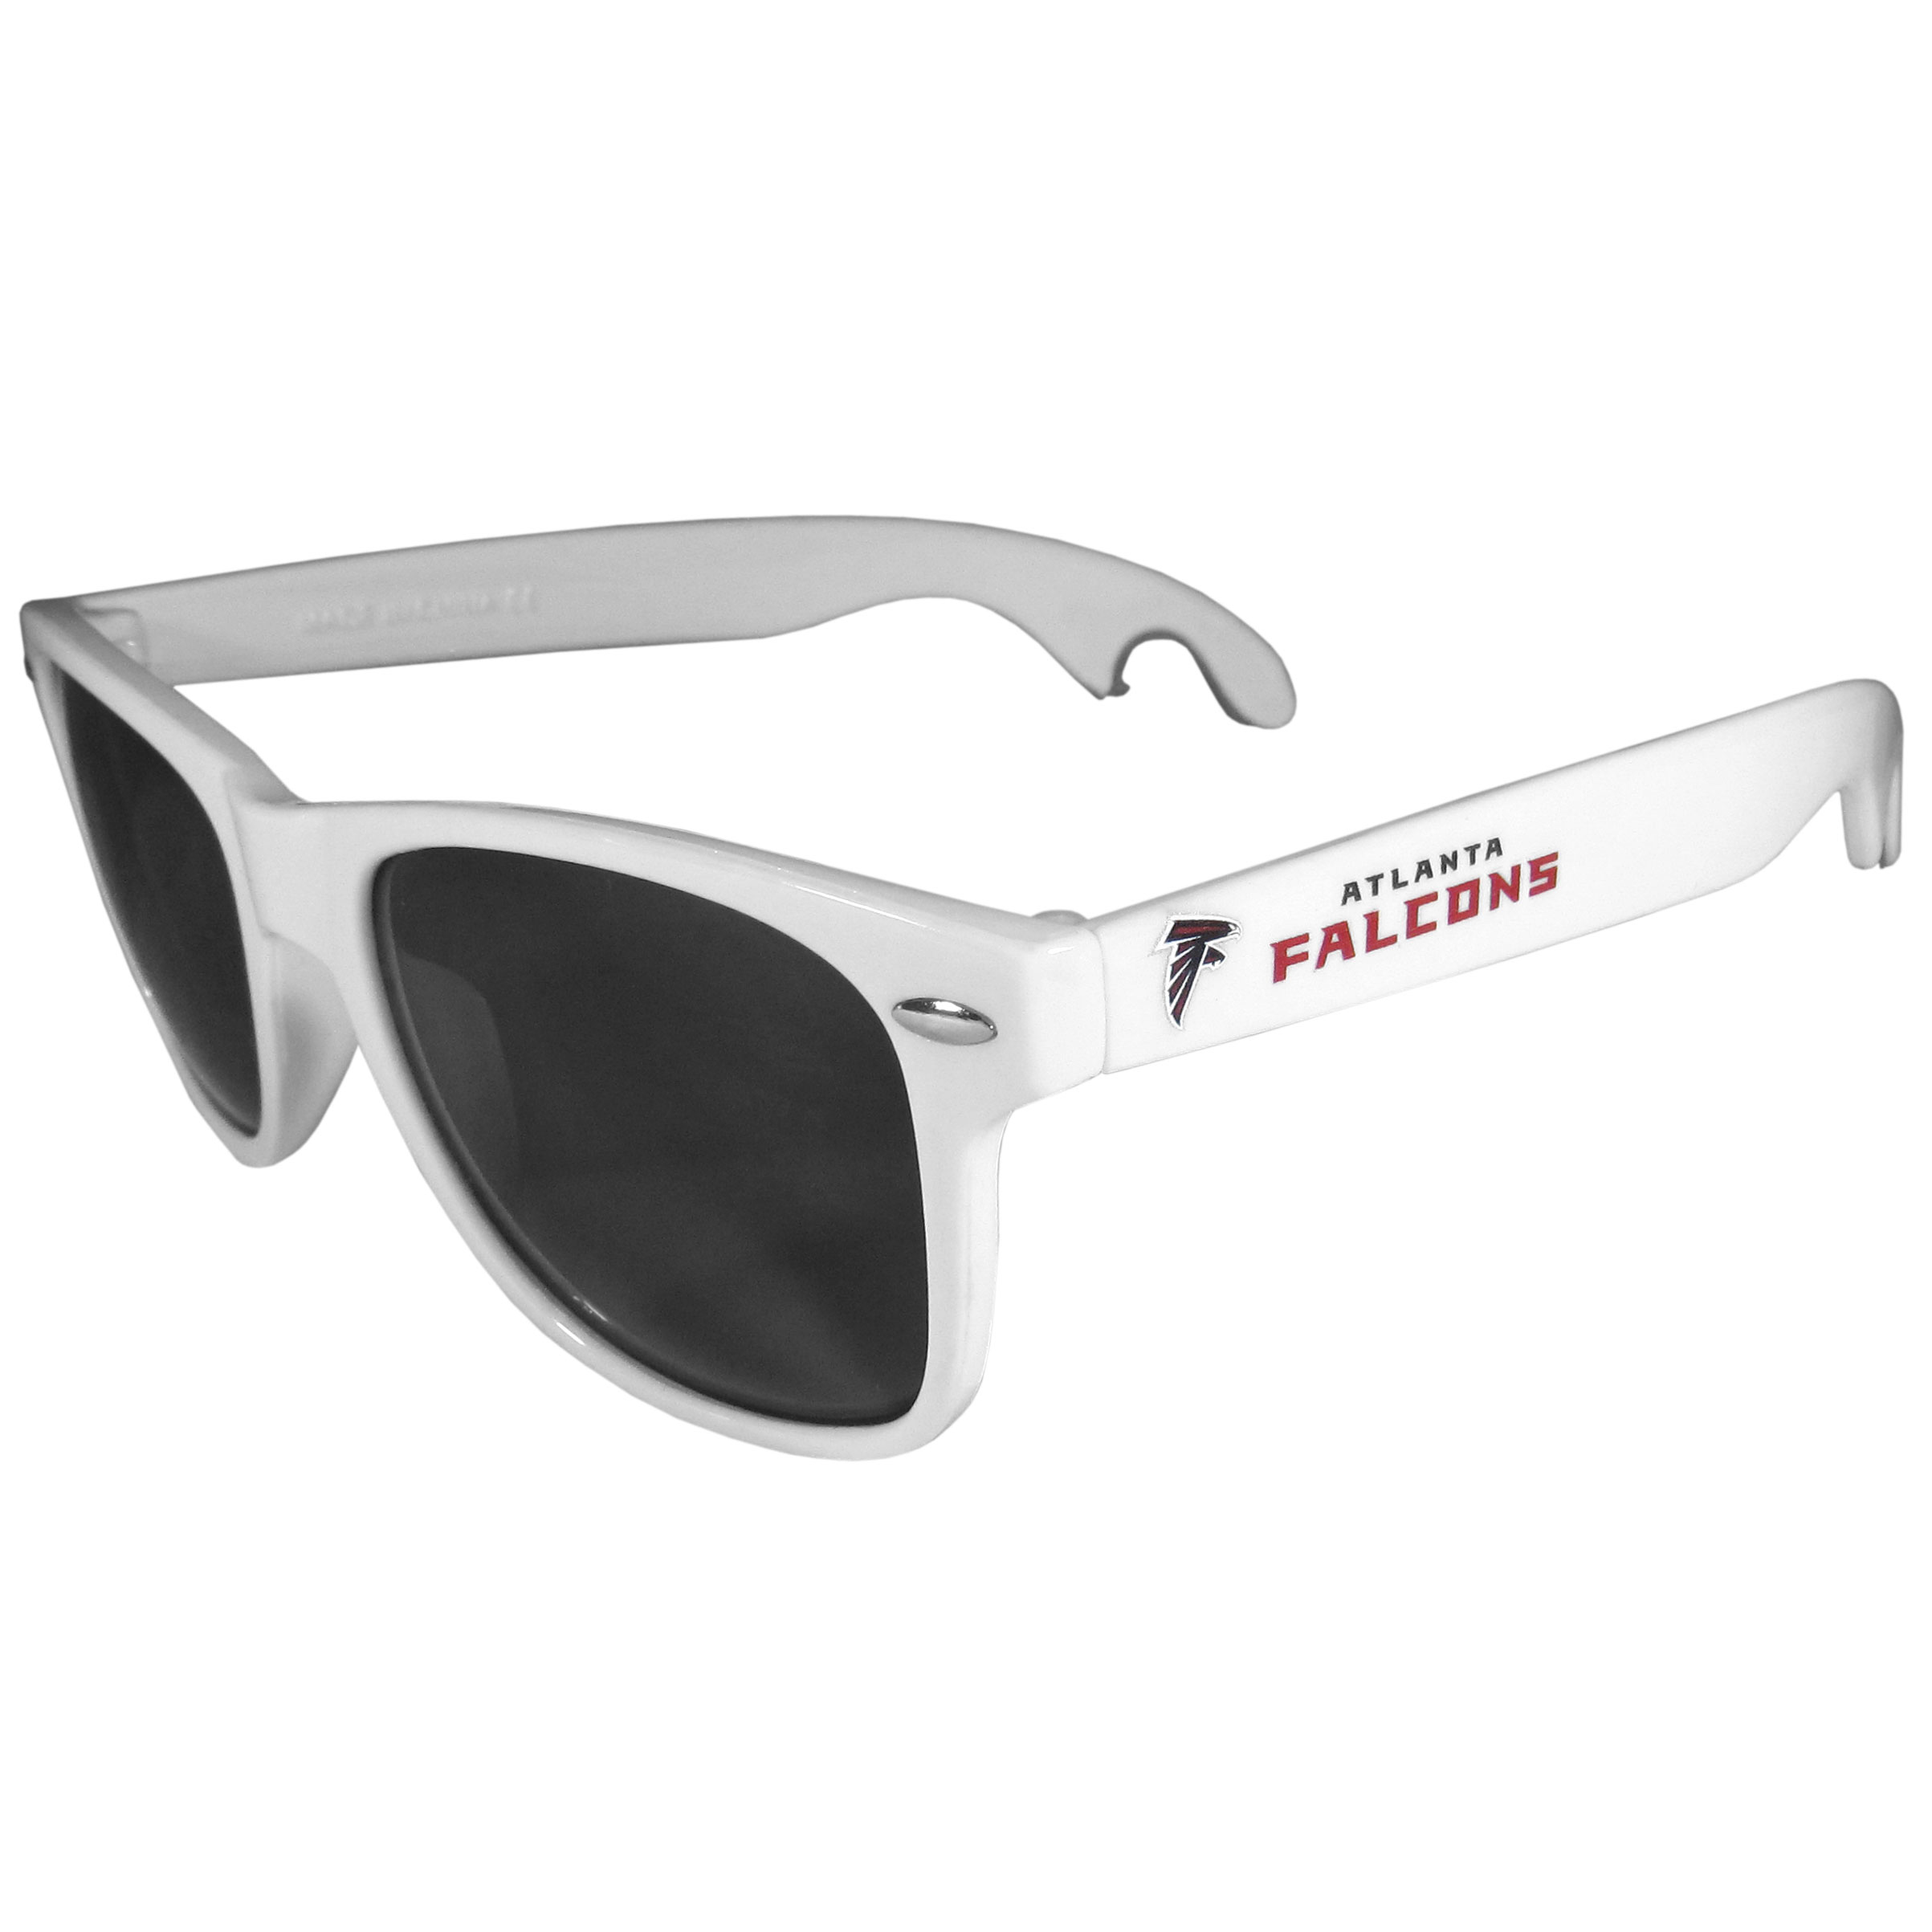 Atlanta Falcons Beachfarer Bottle Opener Sunglasses, White - Seriously, these sunglasses open bottles! Keep the party going with these amazing Atlanta Falcons bottle opener sunglasses. The stylish retro frames feature team designs on the arms and functional bottle openers on the end of the arms. Whether you are at the beach or having a backyard BBQ on game day, these shades will keep your eyes protected with 100% UVA/UVB protection and keep you hydrated with the handy bottle opener arms.